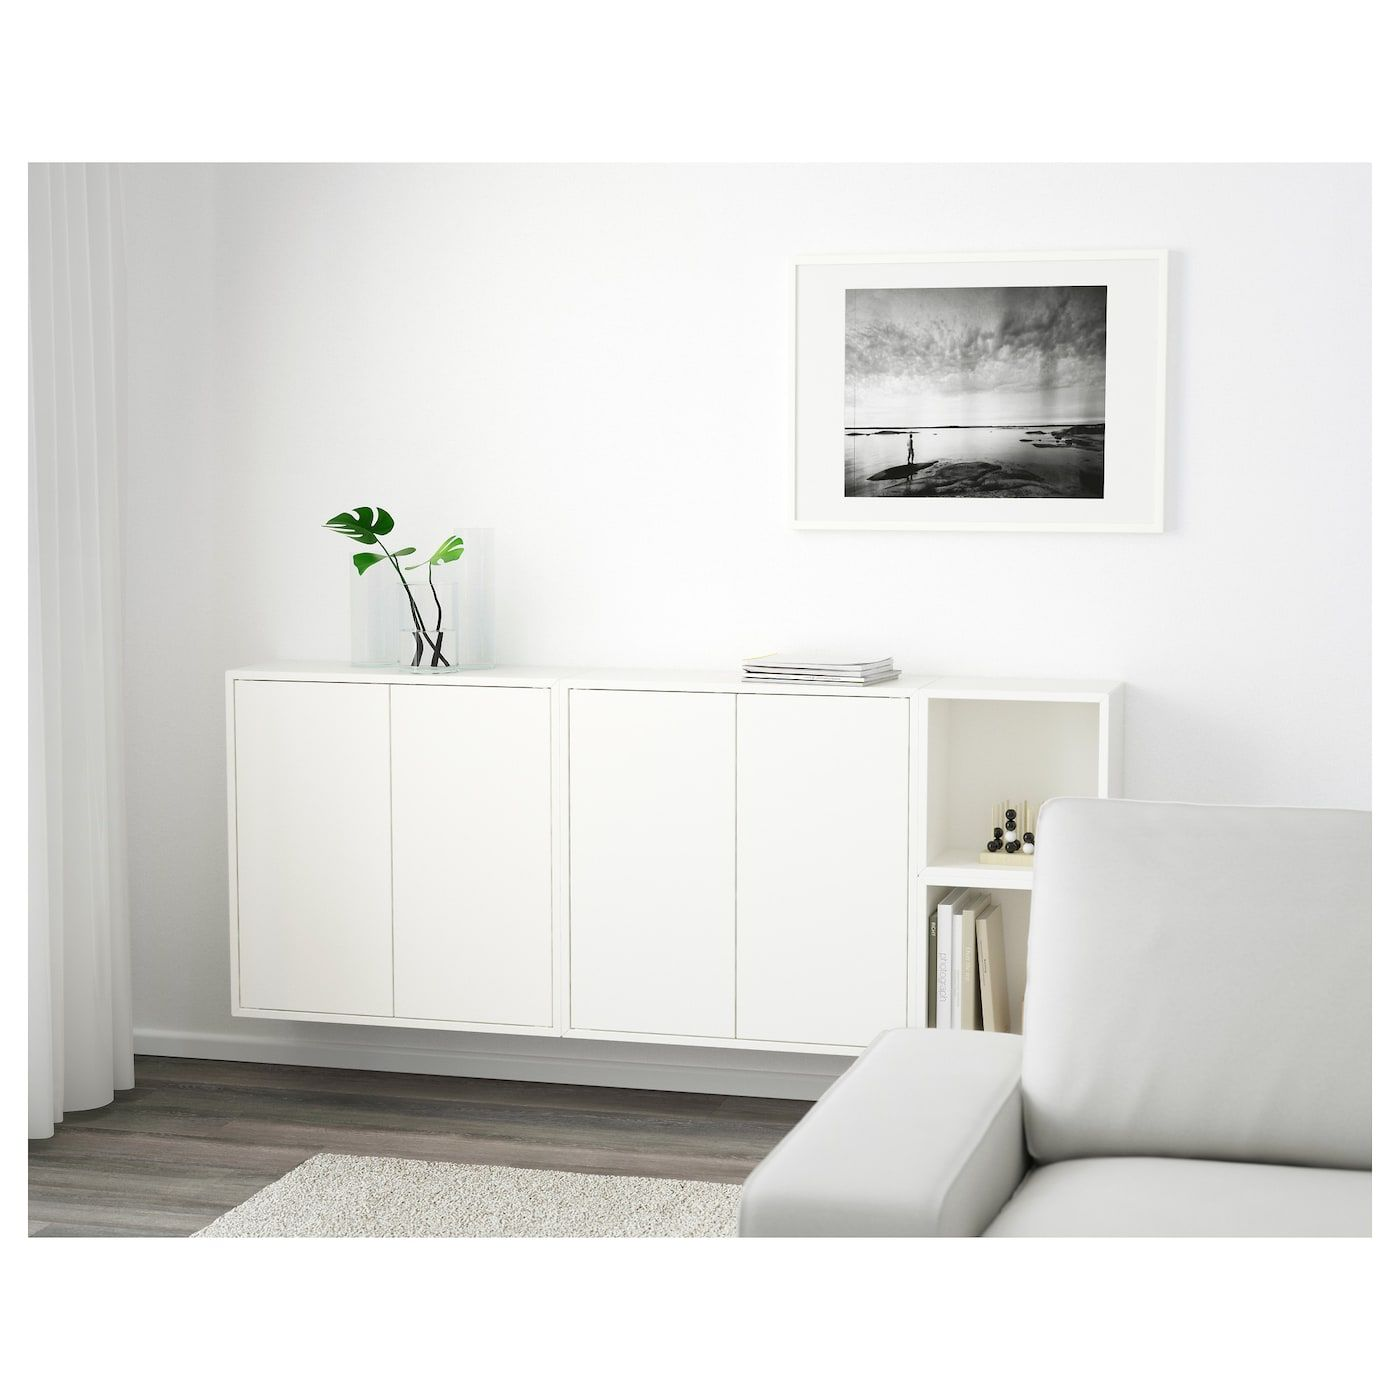 """EKET Wall-mounted cabinet combination, white, Length: 8 ½"""". Find"""